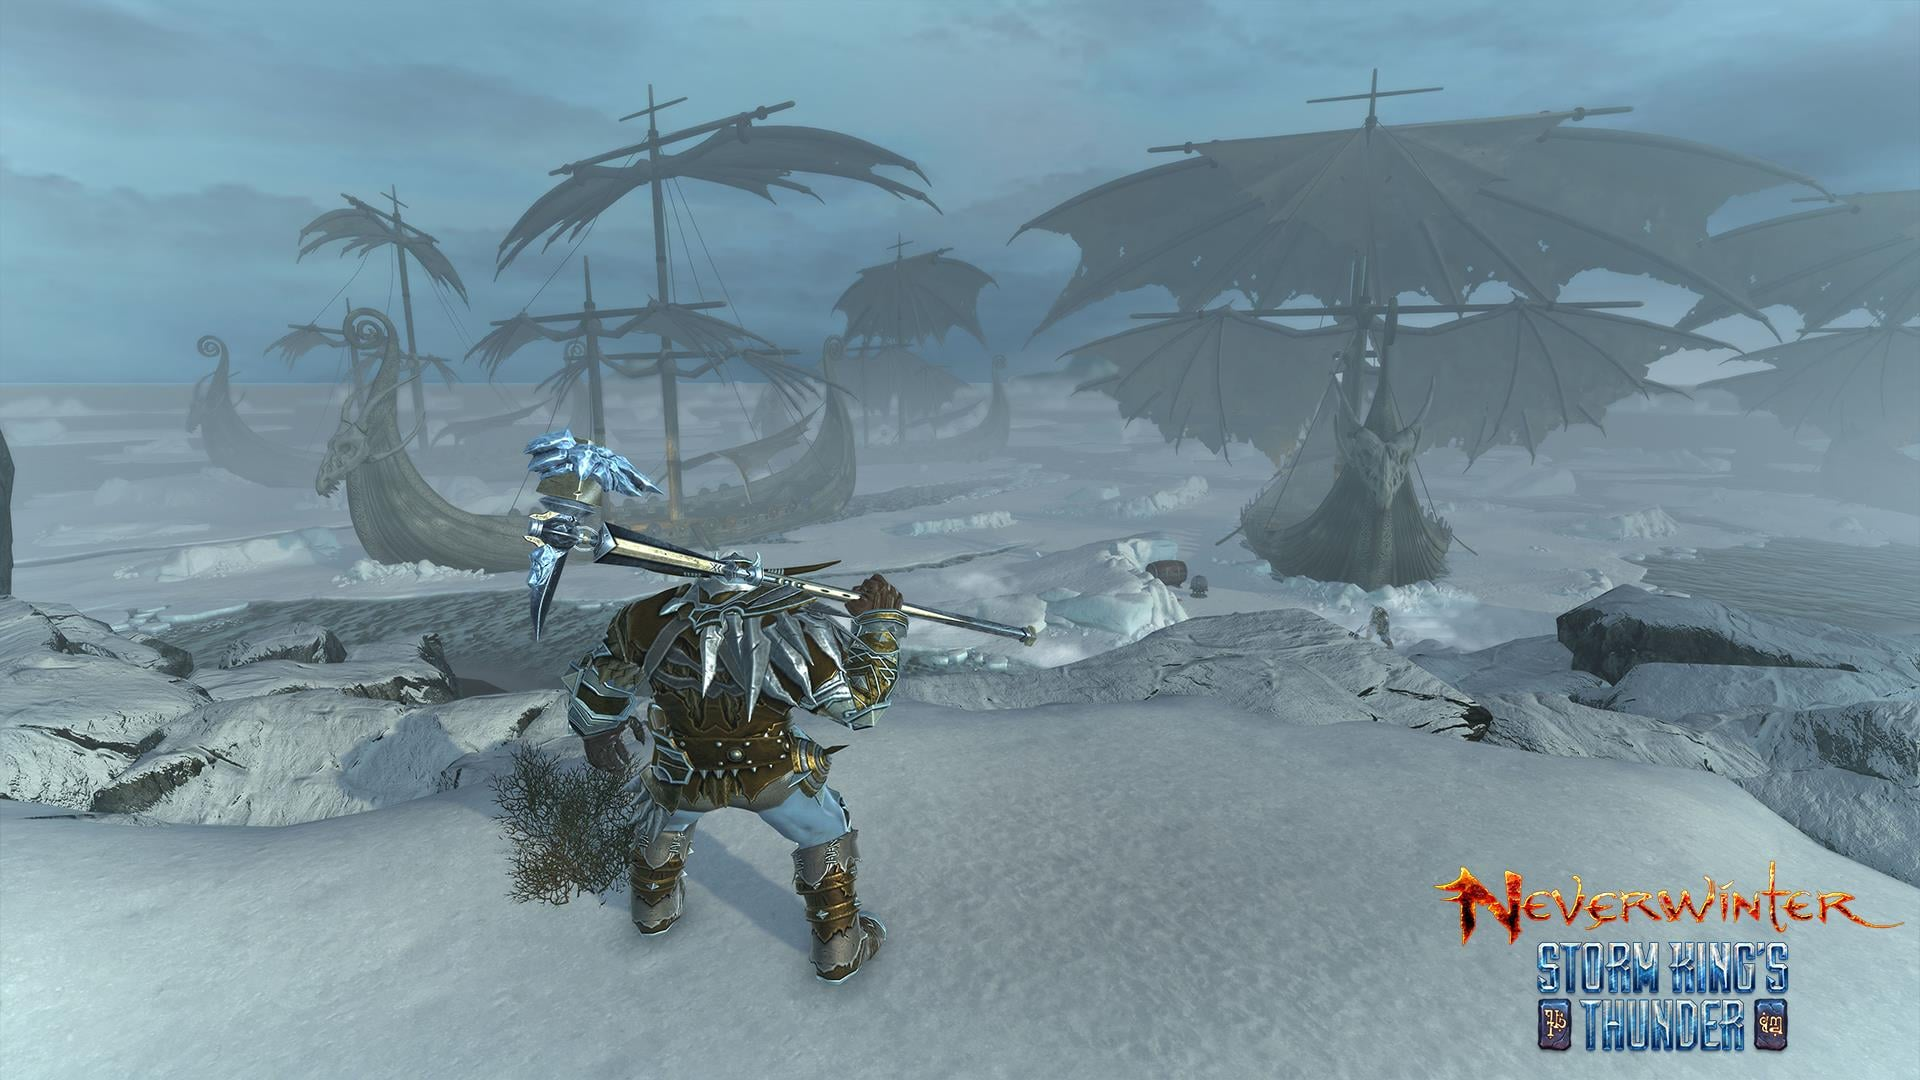 Neverwinter Storm King's Thunder Patch Detailed and Released